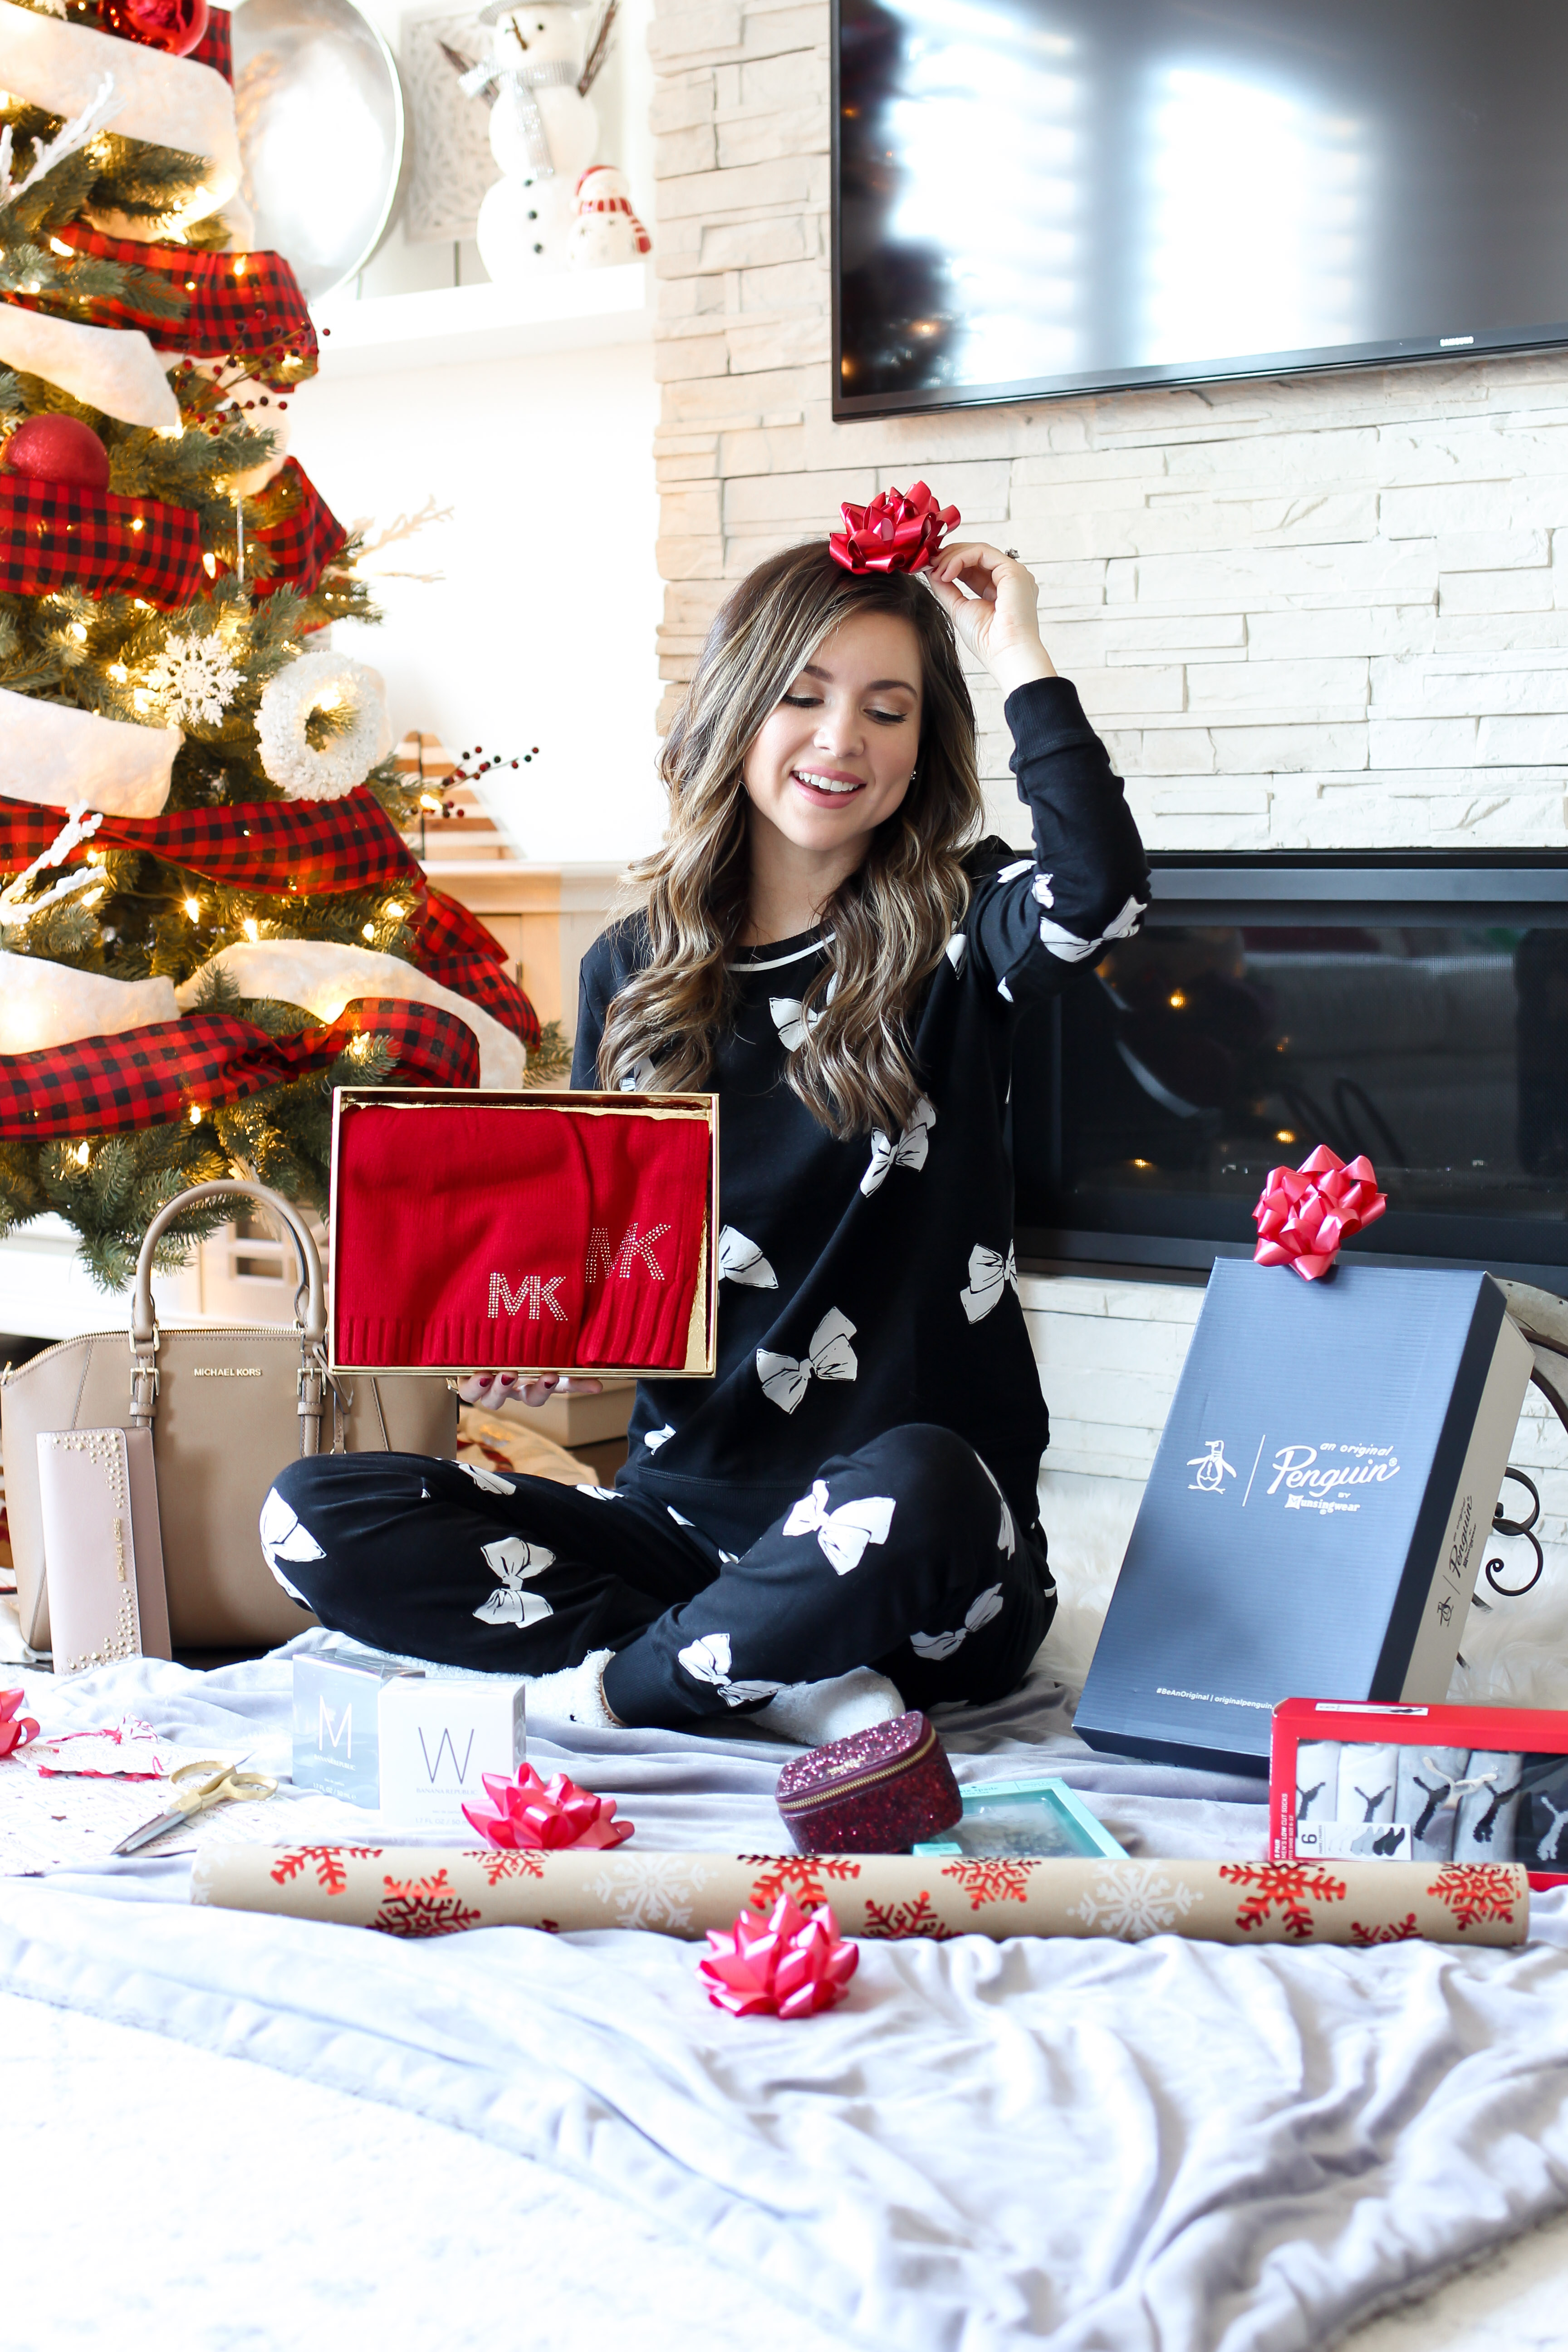 fashion blogger sharing holiday gift times from Michael Kors, kate spade and more